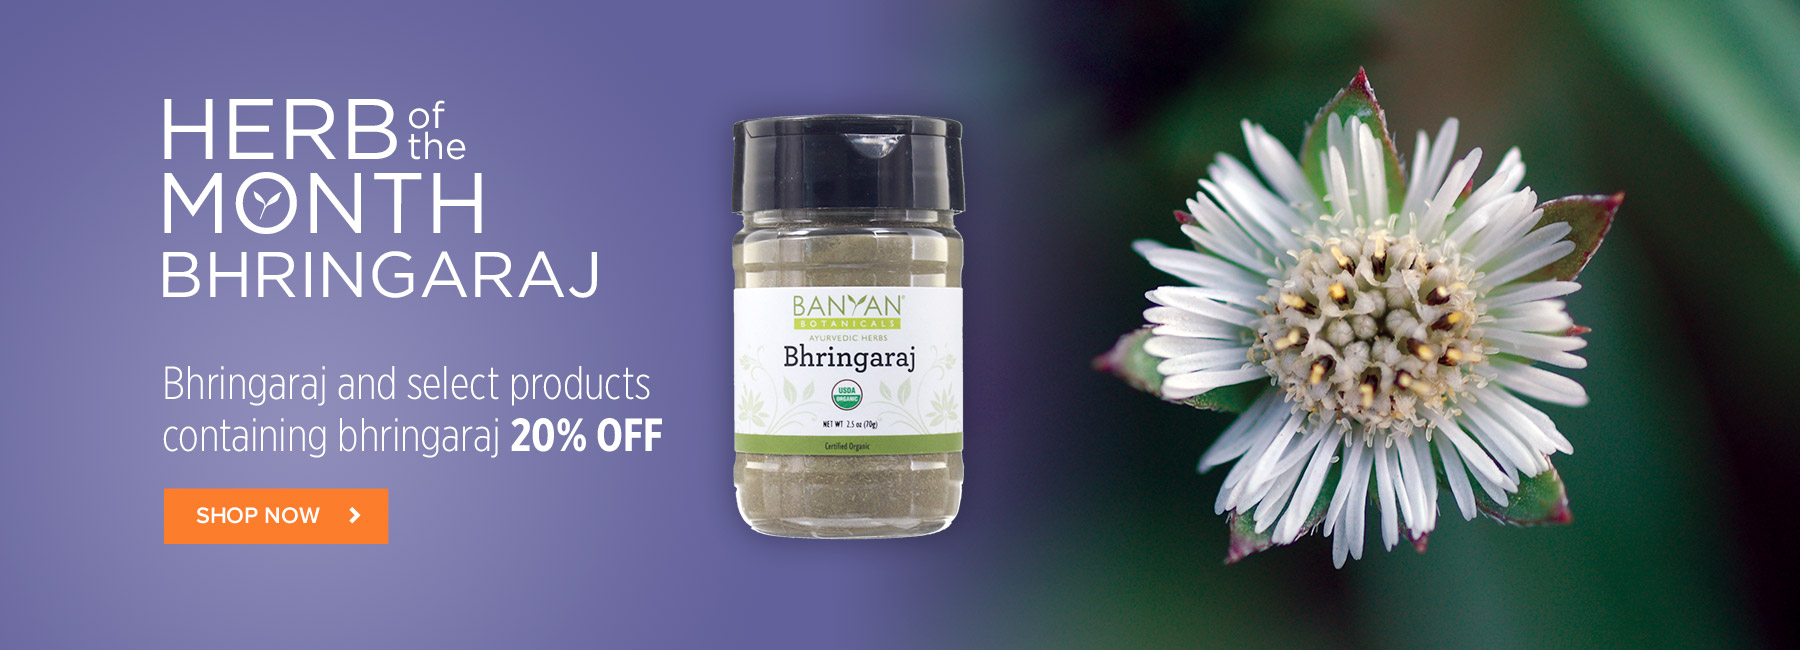 Bhringaraj and select products containing bhringaraj 20% OFF!